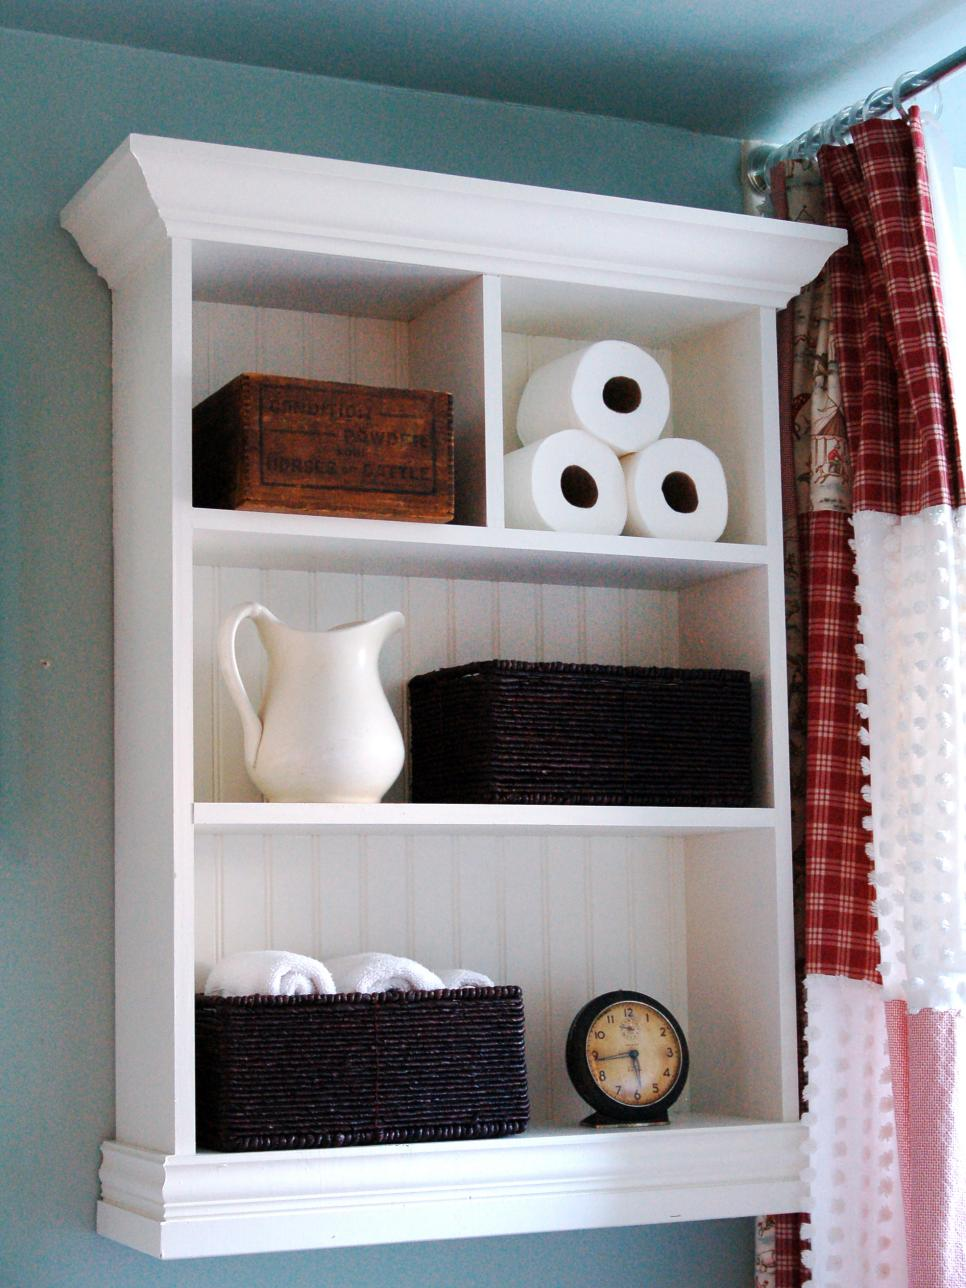 Creative bathroom storage ideas - Creative Bathroom Storage Ideas 1